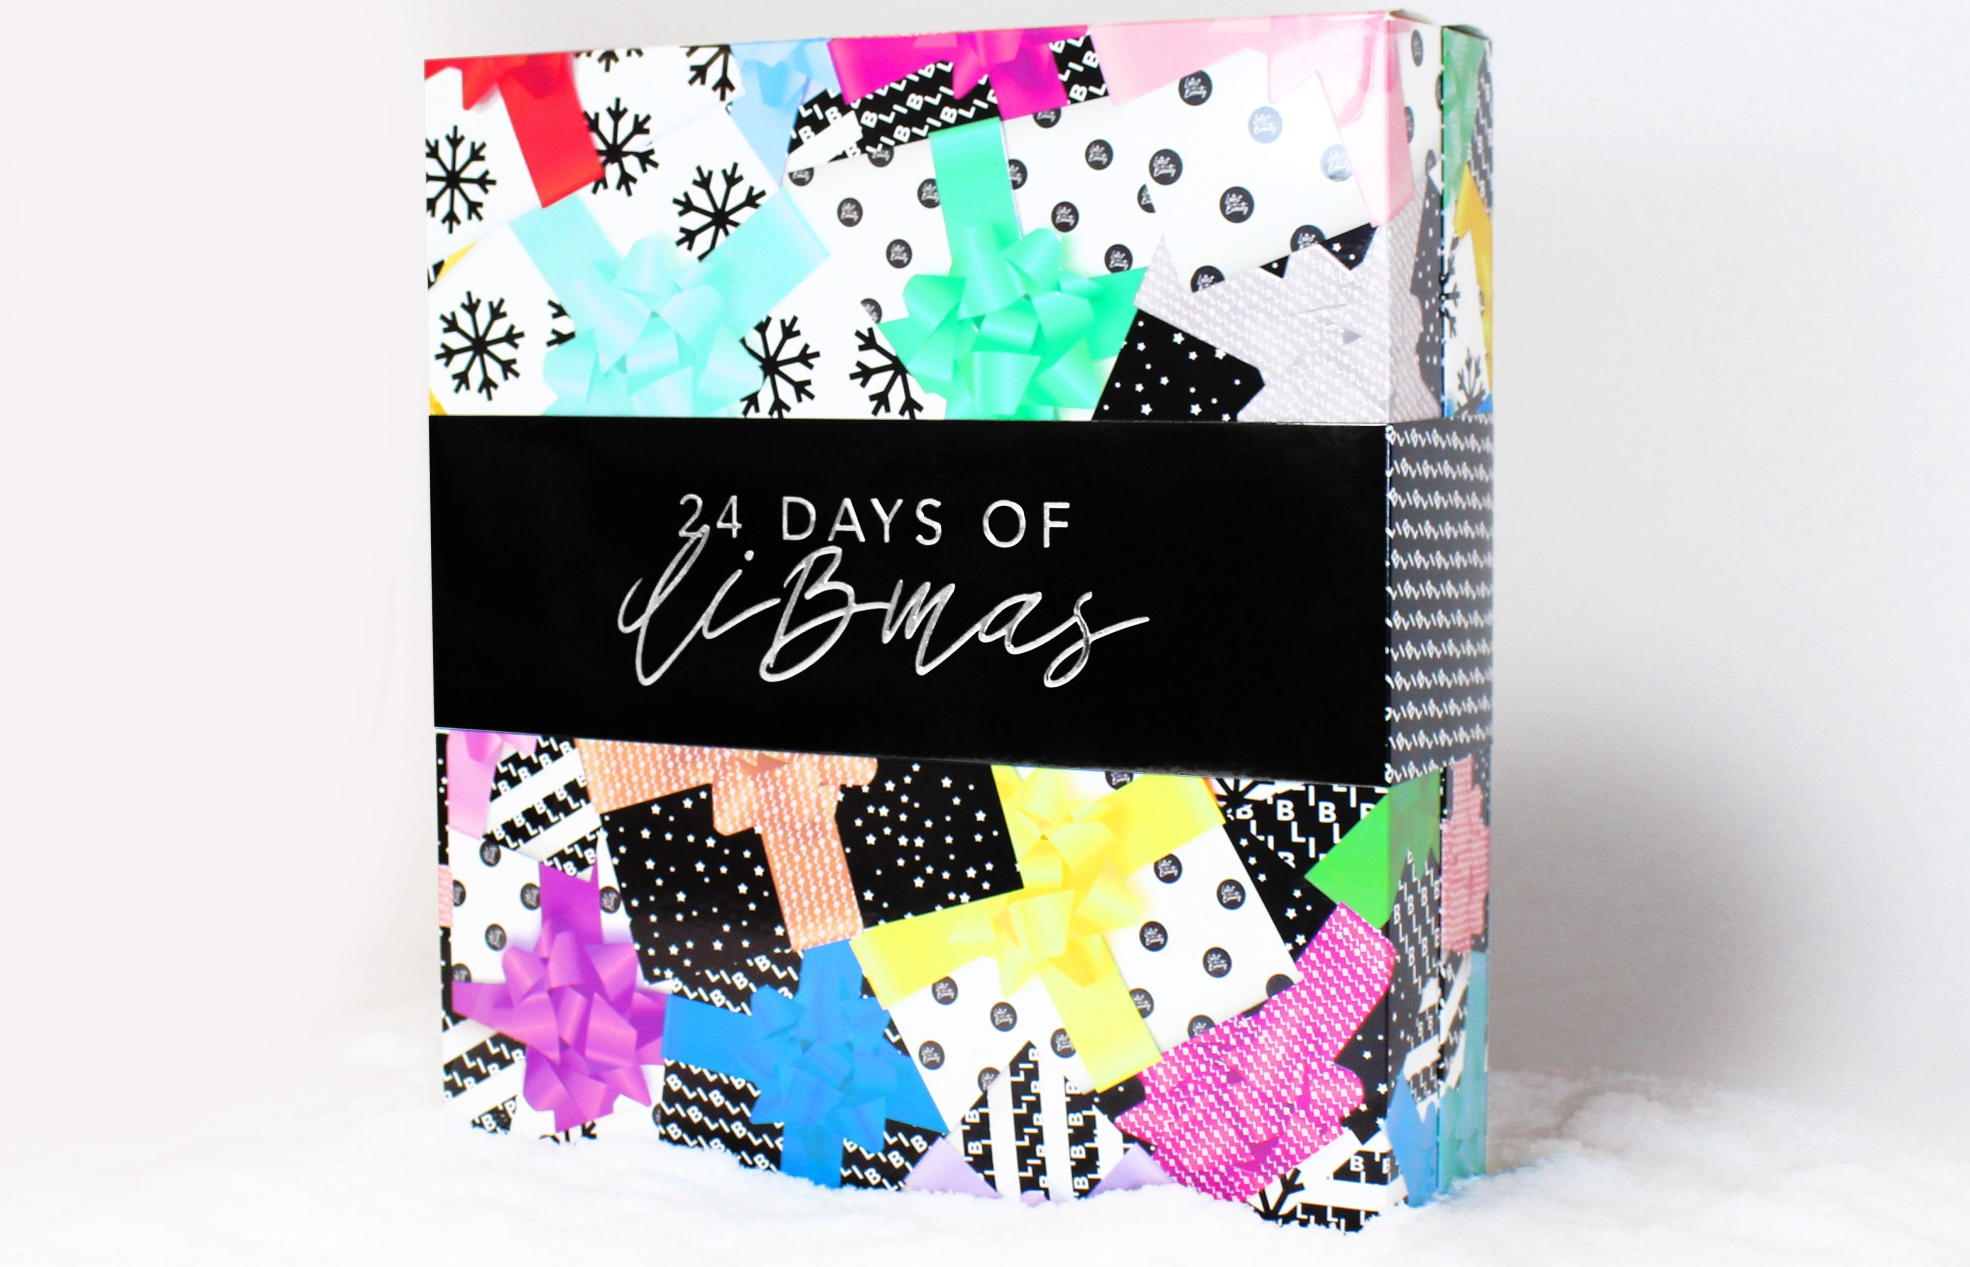 Latest in beauty advent calendar 2019 - The LDN Diaries